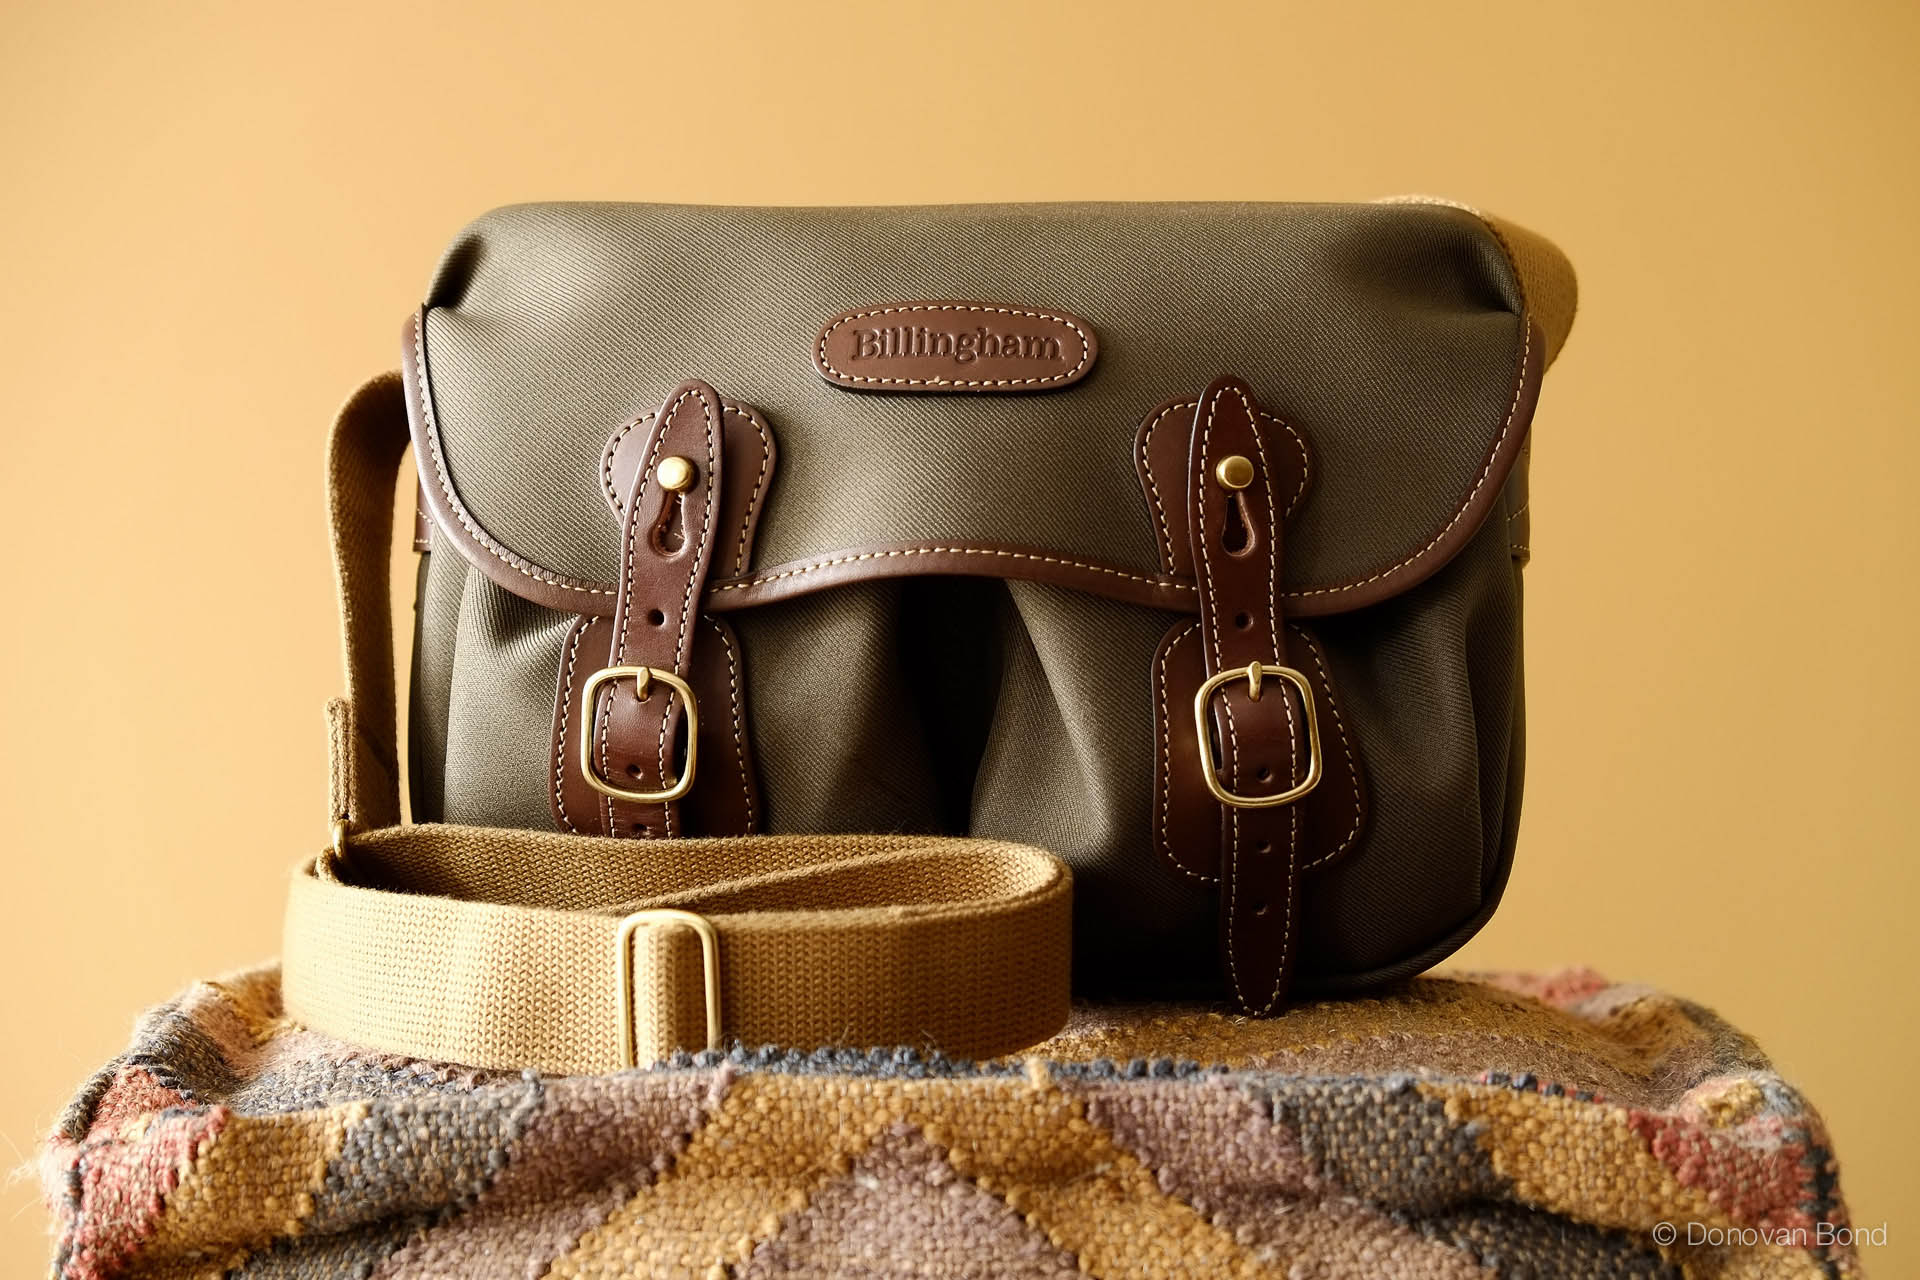 The Billingham Hadley Small in Sage FibreNyte, Chocolate leather, and brass fittings.